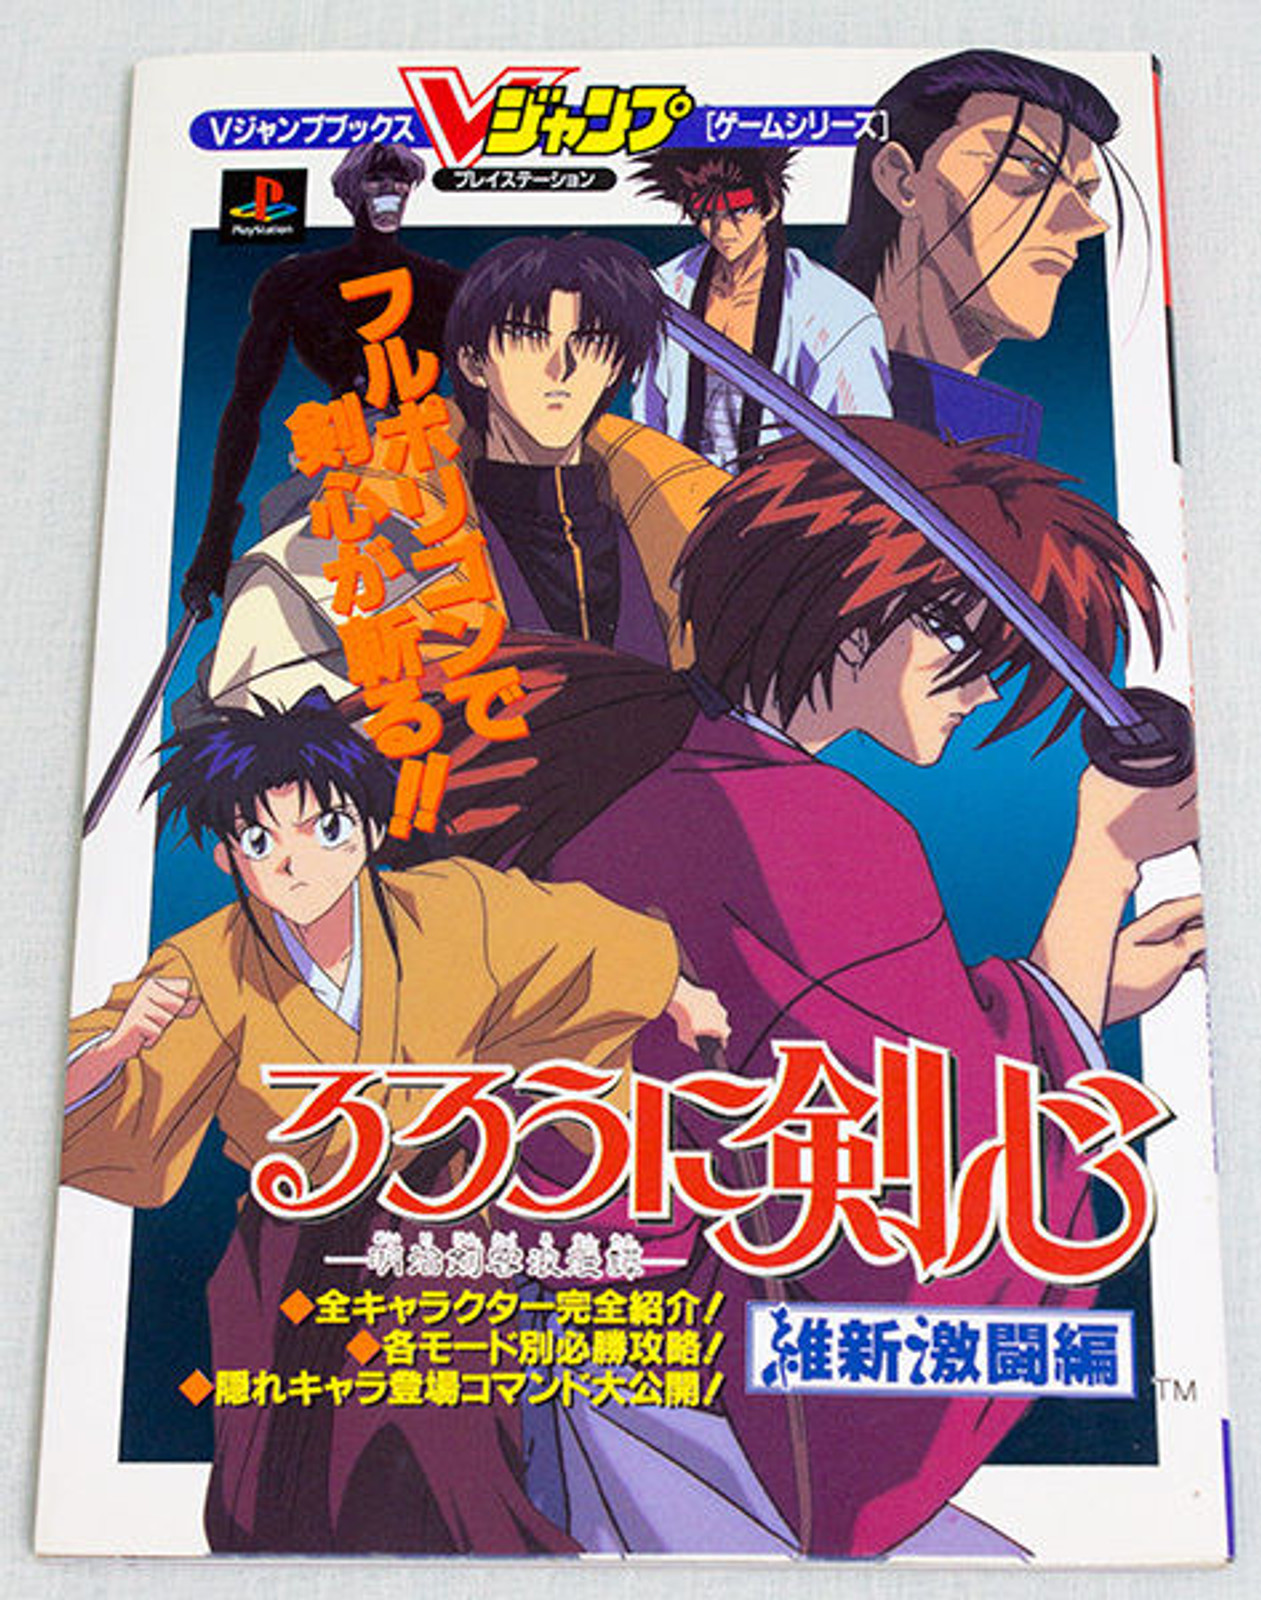 Rurouni Kenshin Ishin Gekitou Game Guide Book Playstation JAPAN ANIME PS JUMP